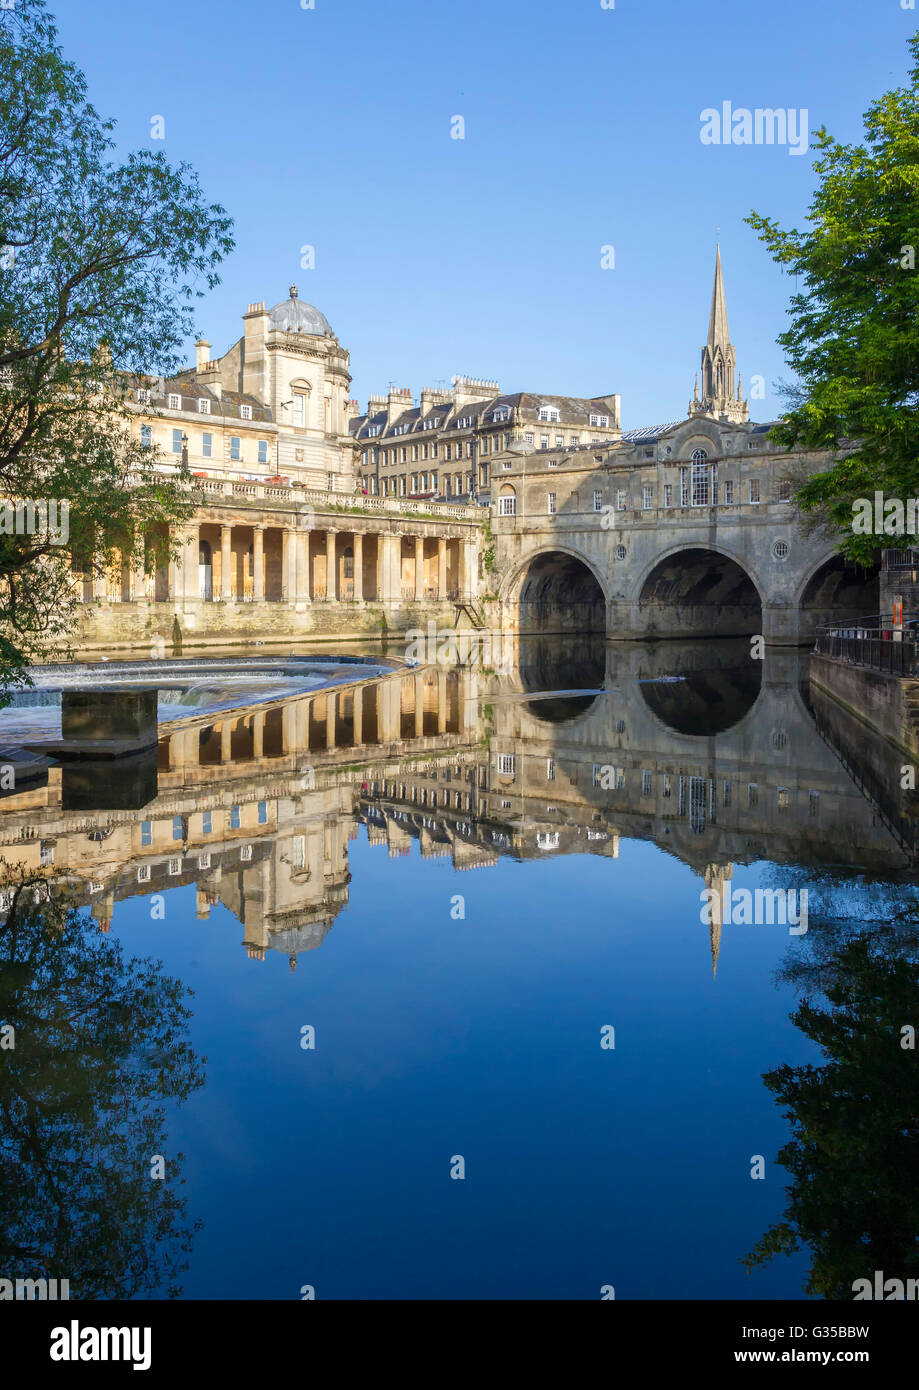 La ville historique de Bath, Somerset. Photo Stock